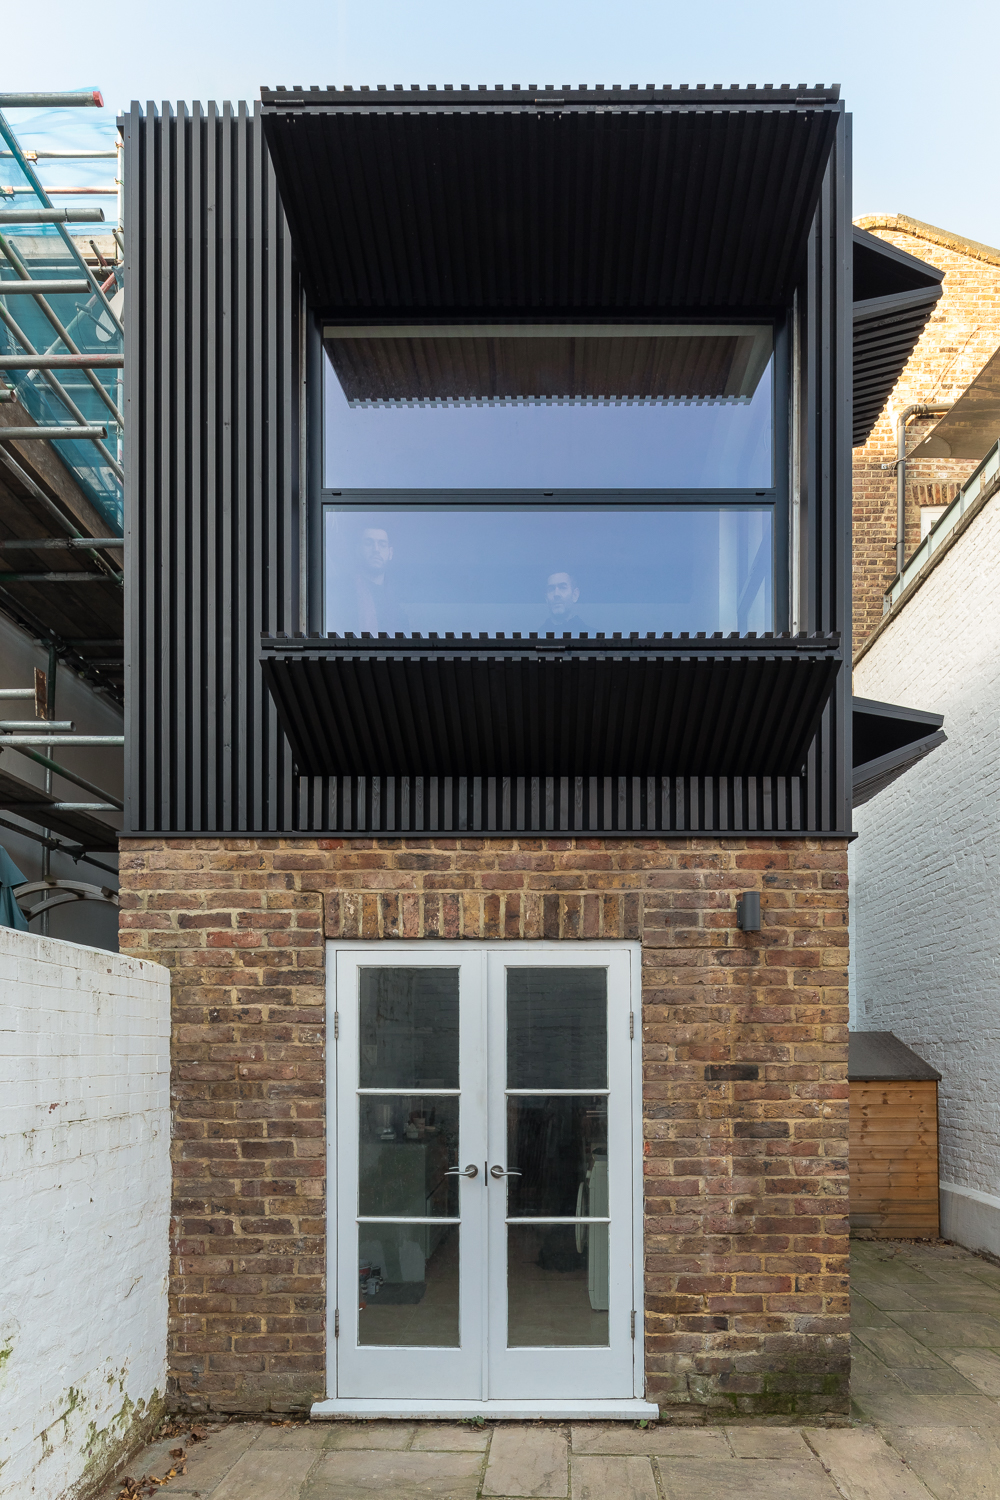 ID7A4926-Edit2 - 150119_MATA_Architects_Battishill_Street - Small.jpg